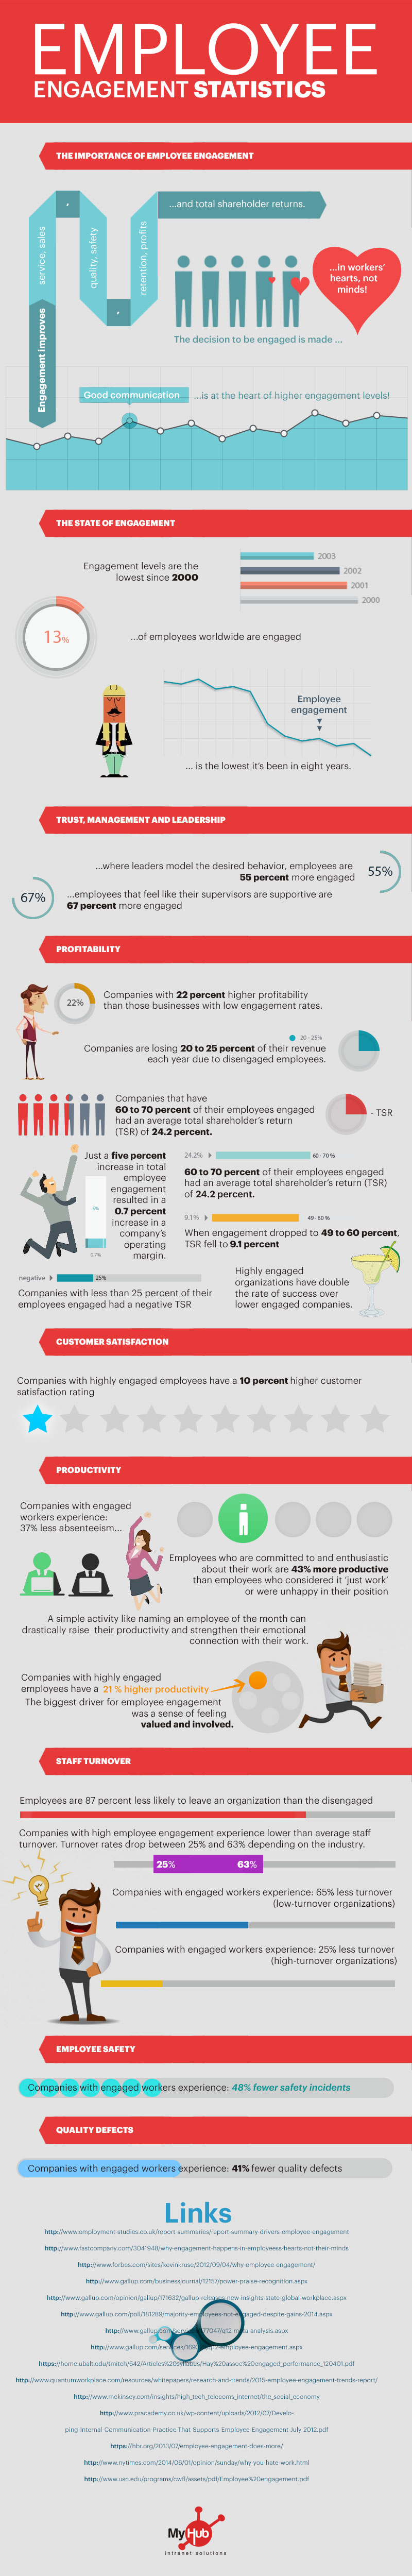 employee-engagement-statistics